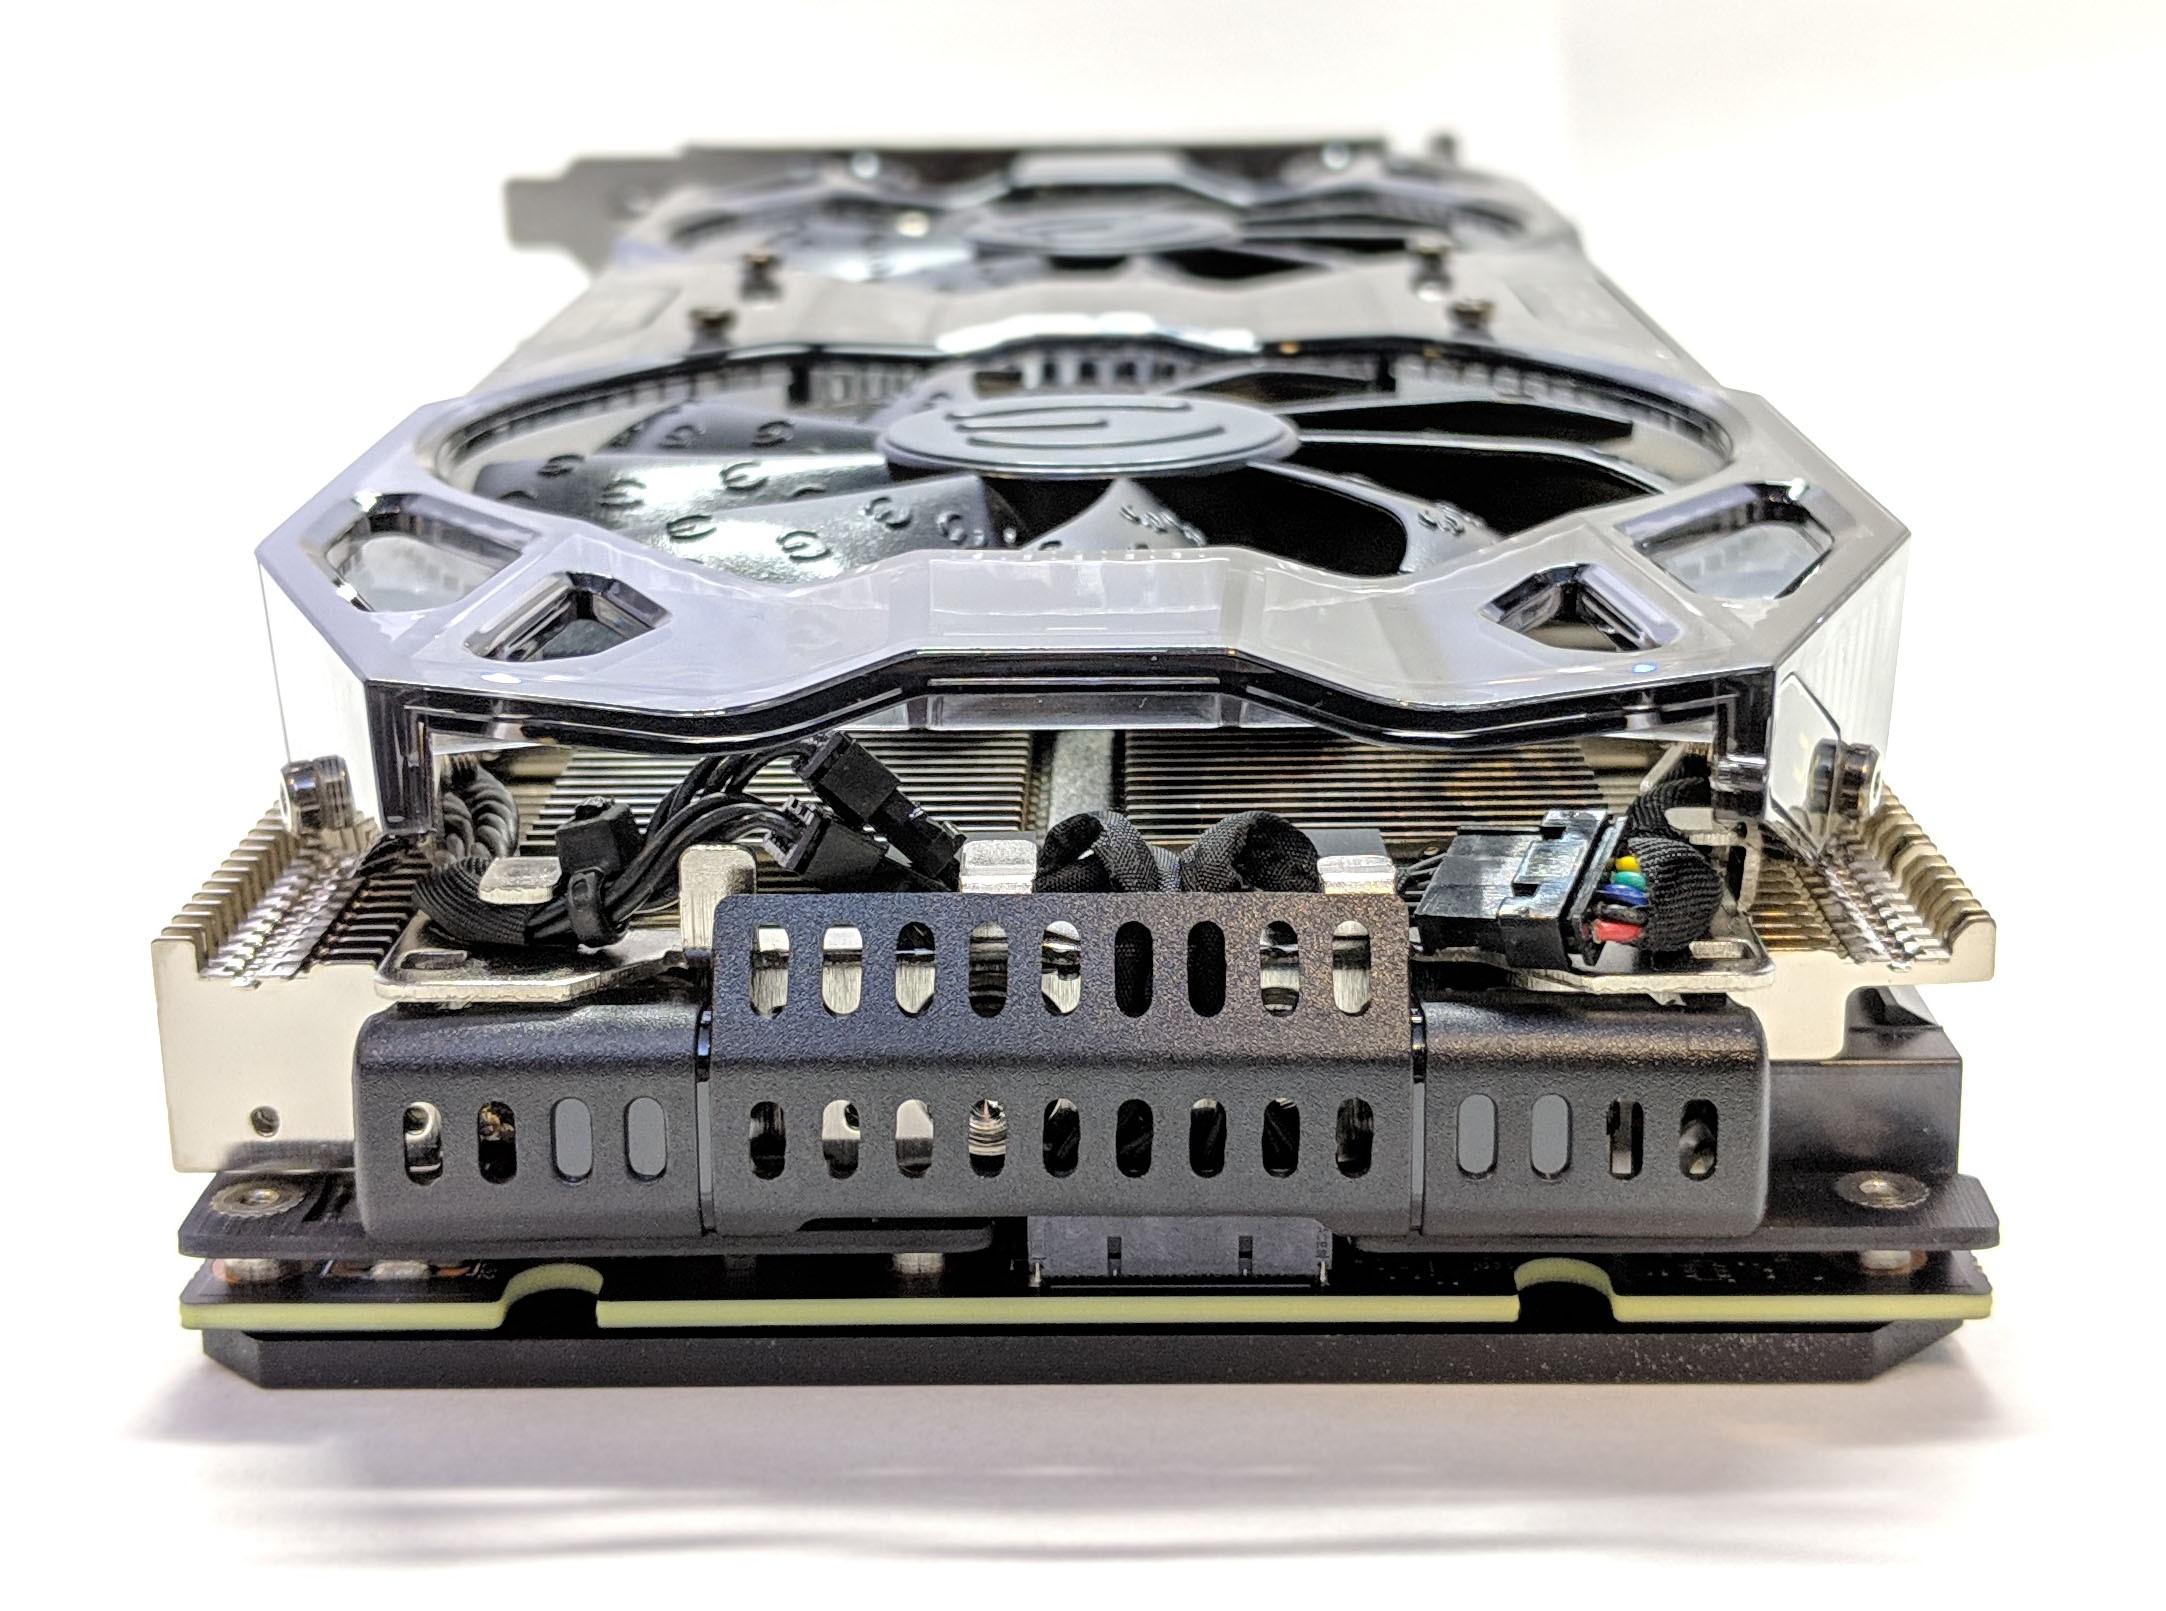 EVGA RTX 2070 XC Gaming Graphics Card Review – GND-Tech